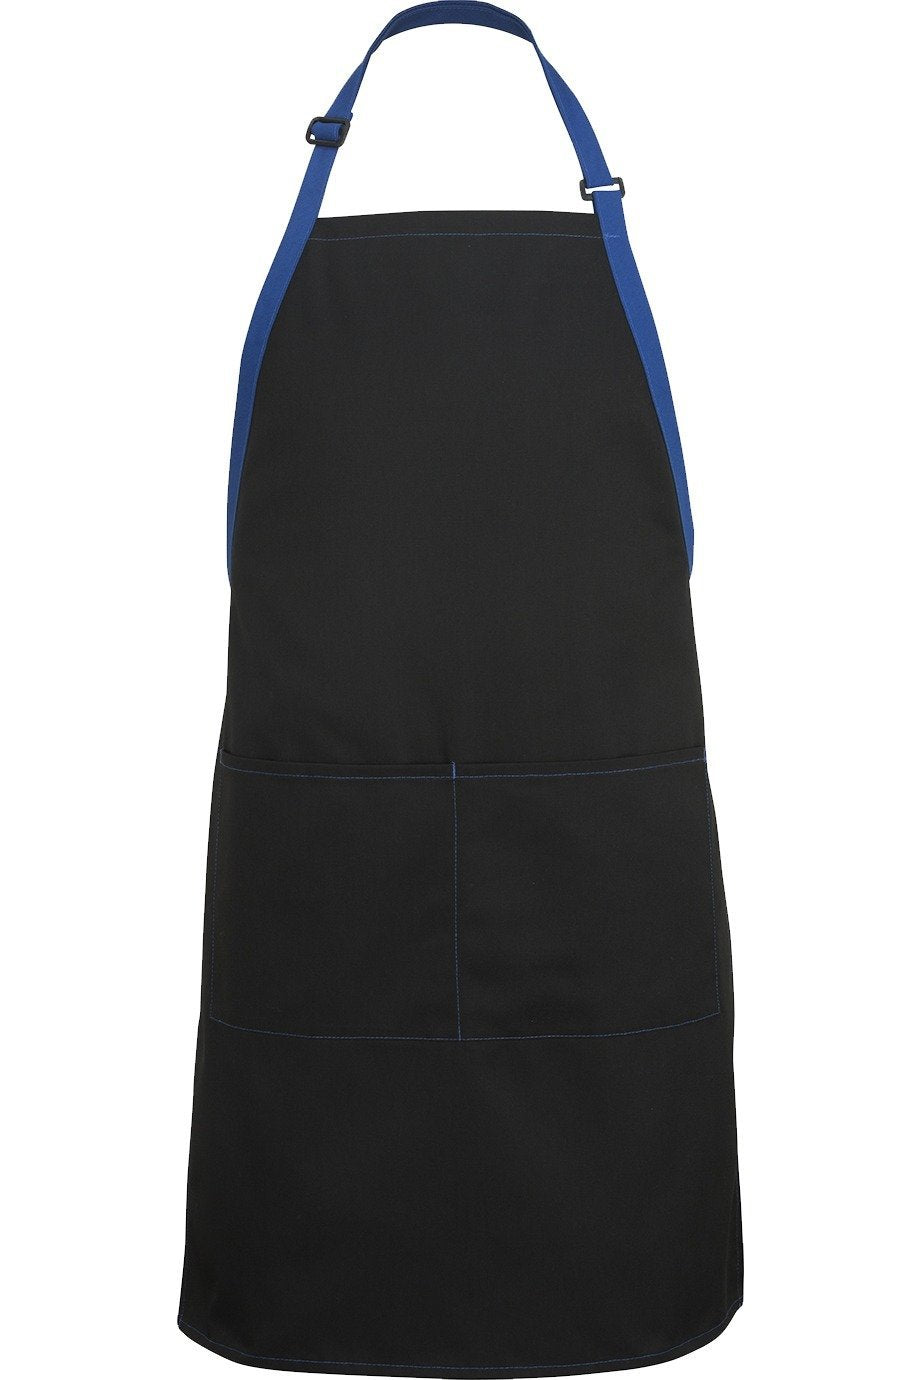 Black w/ Royal Blue Bib Color Block Adjustable Apron (2 Pockets)